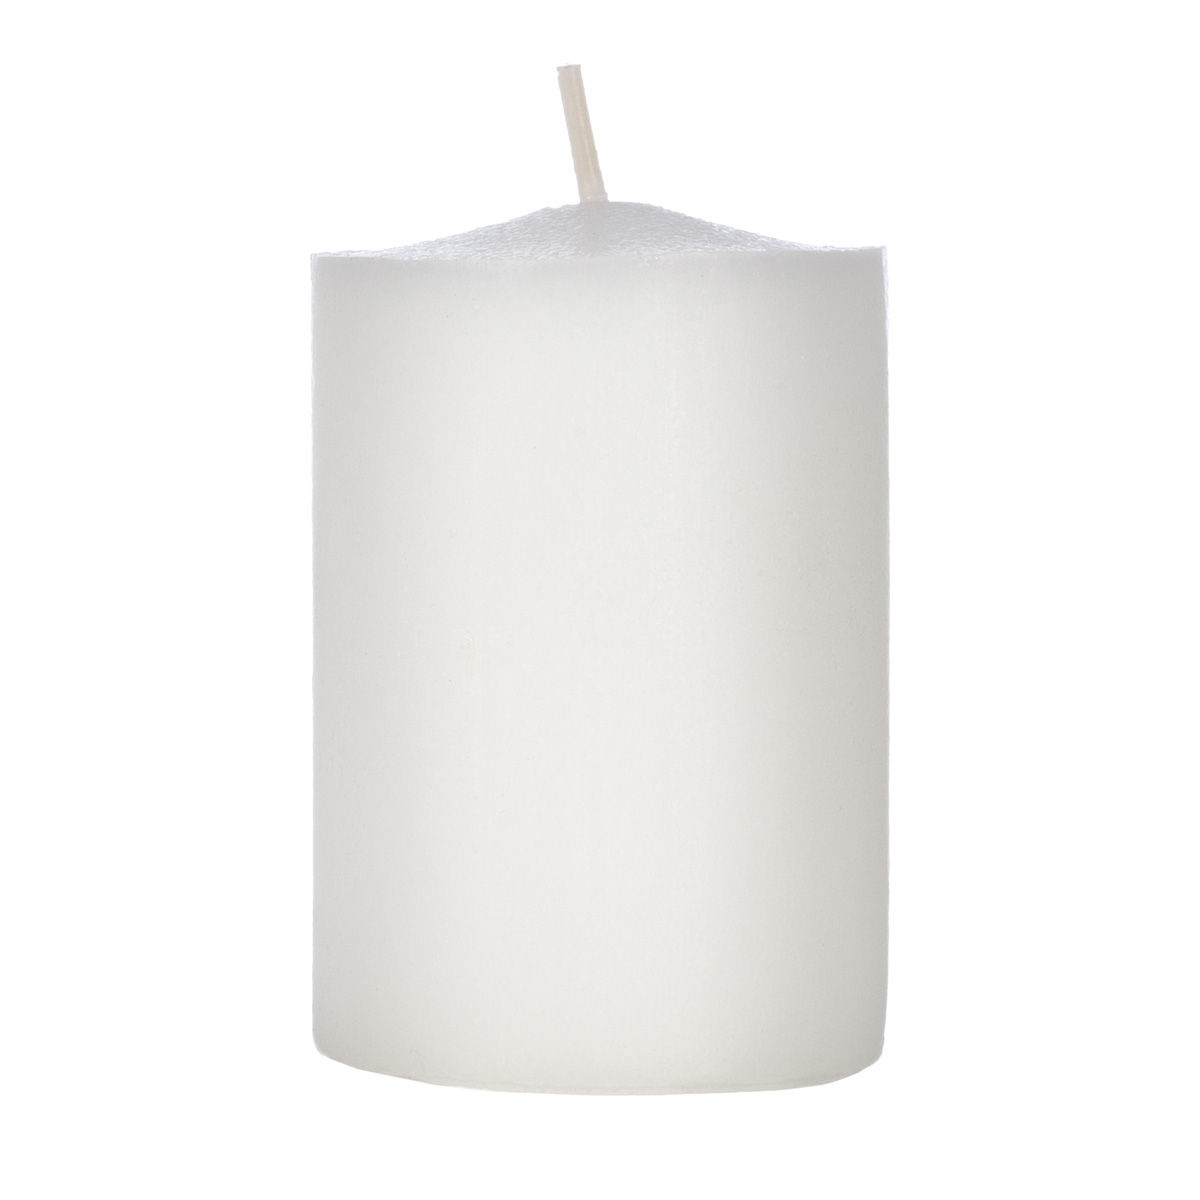 15 Hour White Votive Candle In Bulk Restaurant Candles